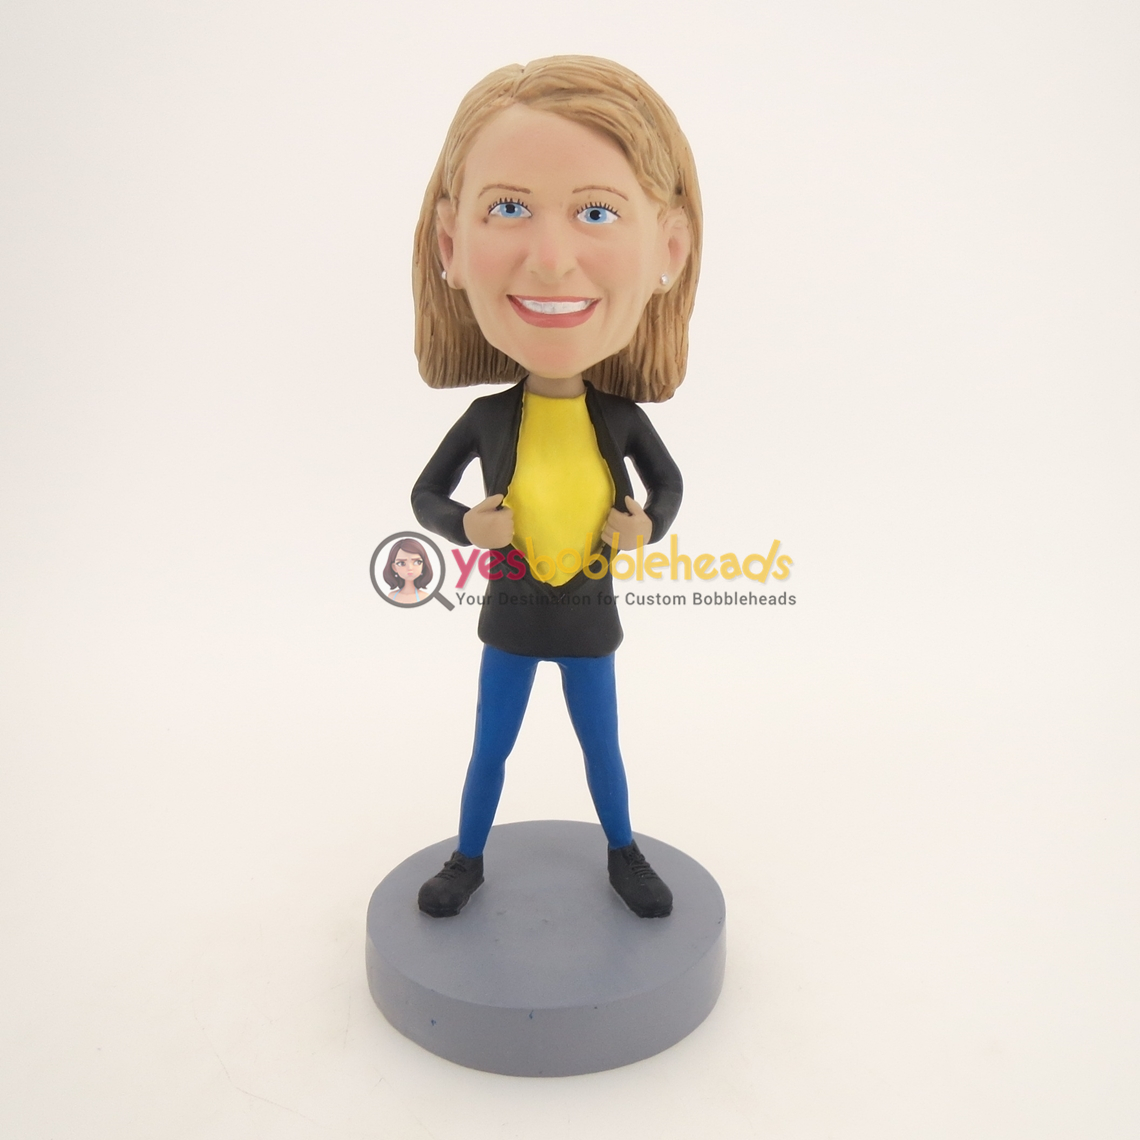 Picture of Custom Bobblehead Doll: Girl with Black Suit